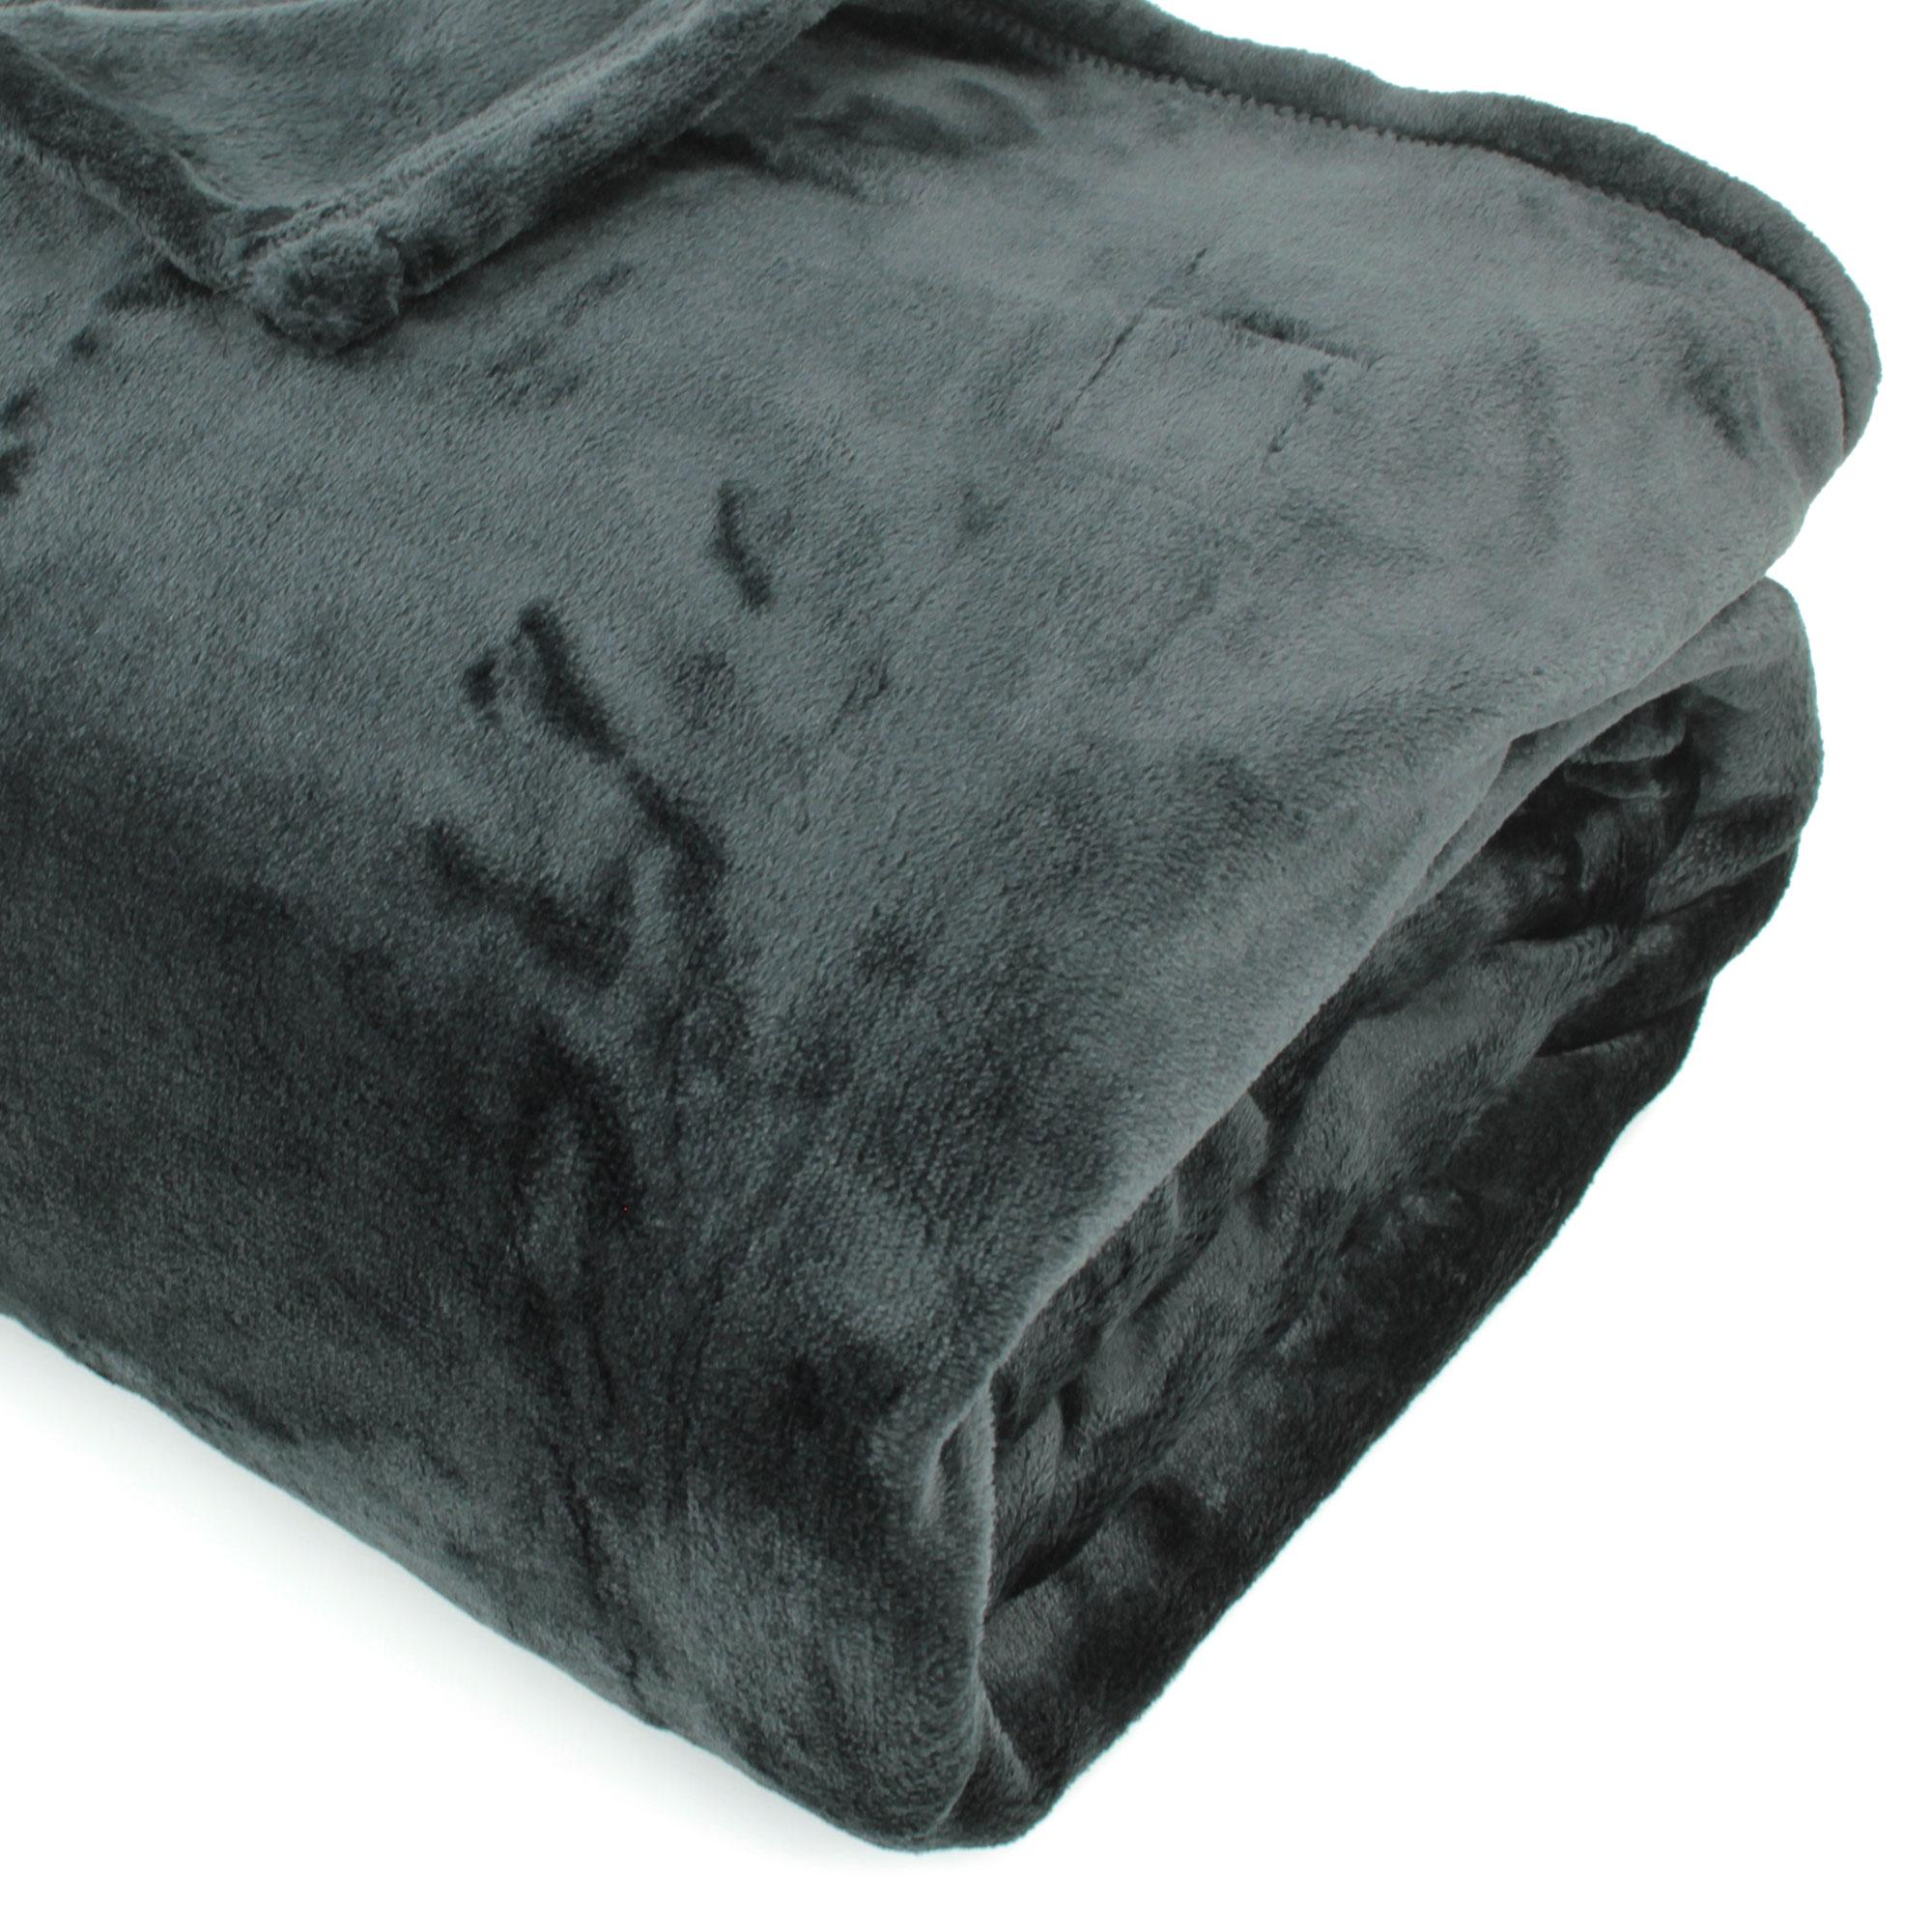 couverture polaire 240x260 microfibre velvet noir ebay. Black Bedroom Furniture Sets. Home Design Ideas